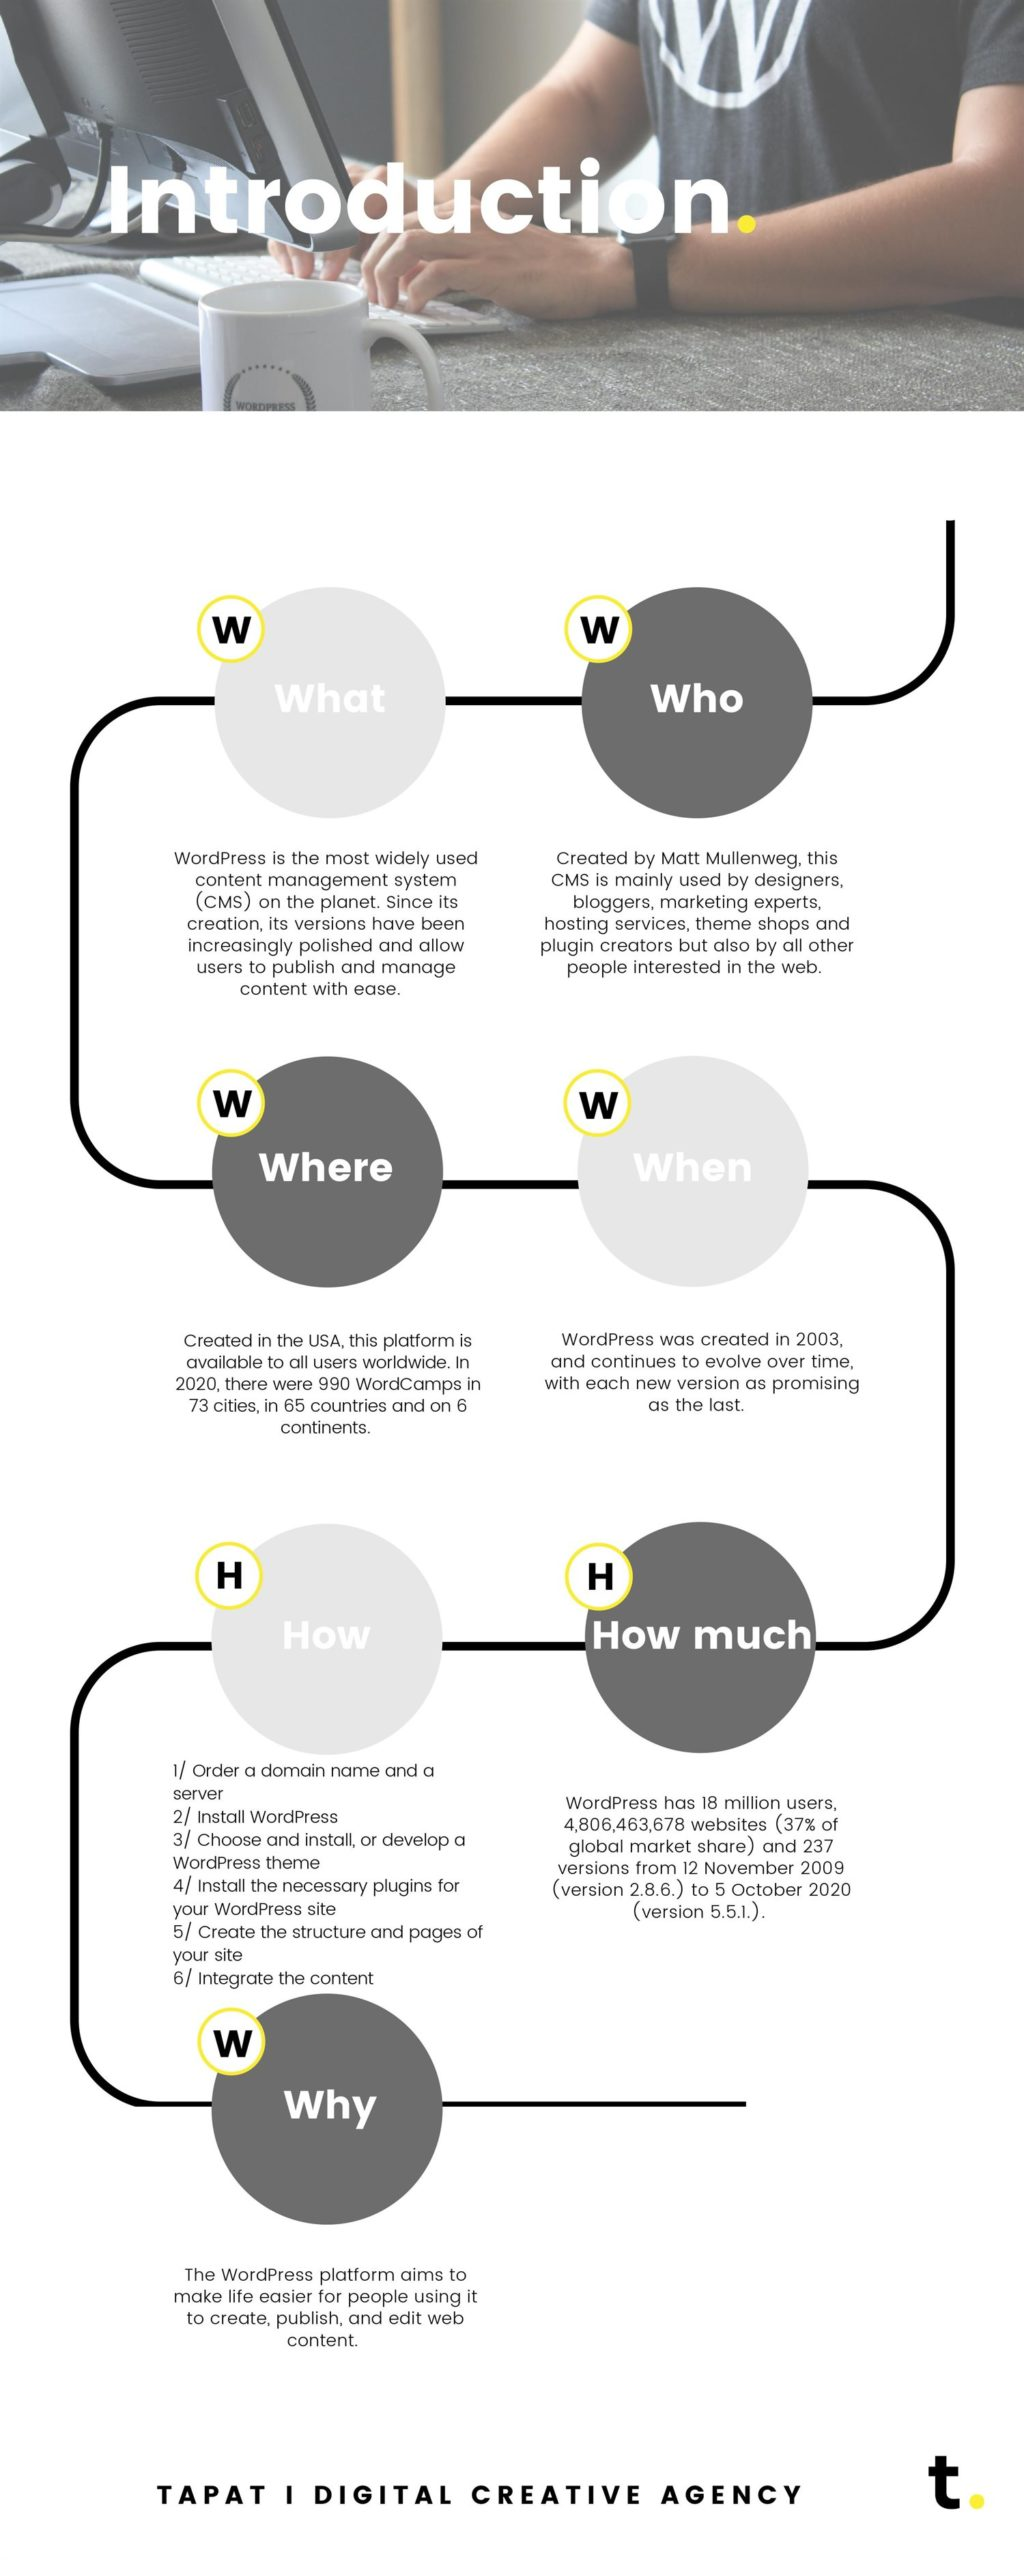 Wordpress infographic 01 introduction - tapat creative agency